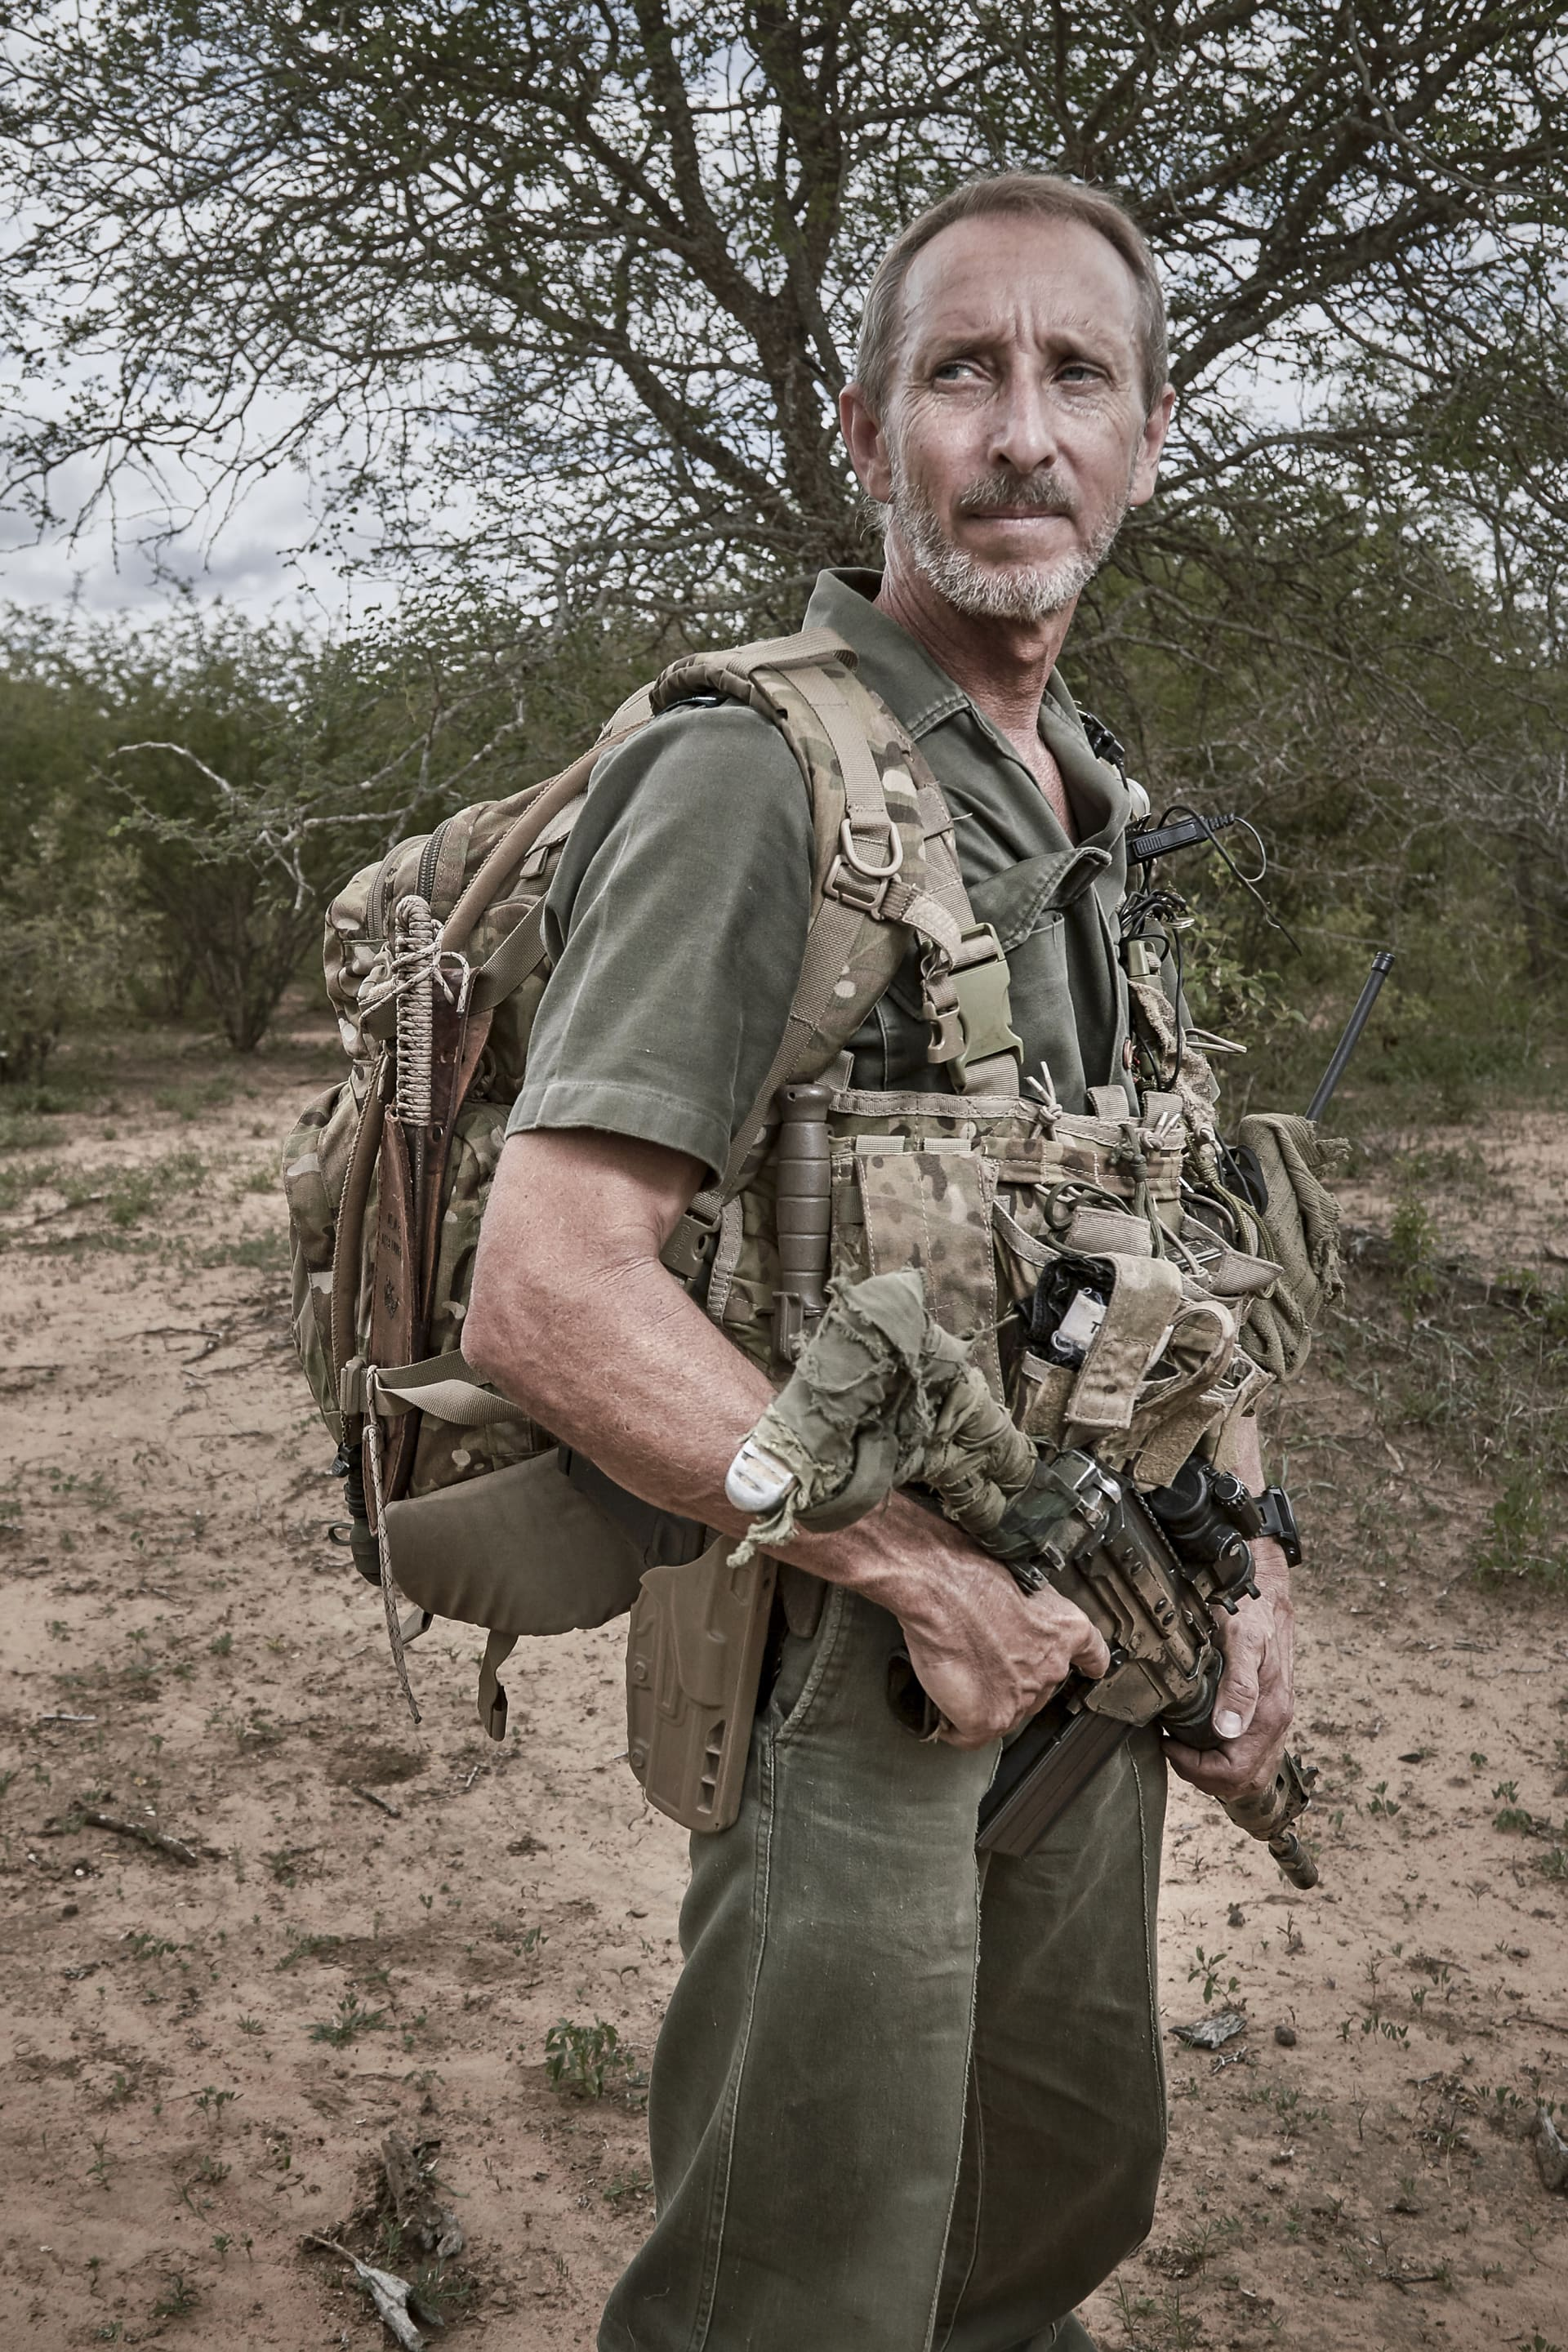 Special ranger - often in the bush for several days in isolation, tracking, observing and gathering intelligence.